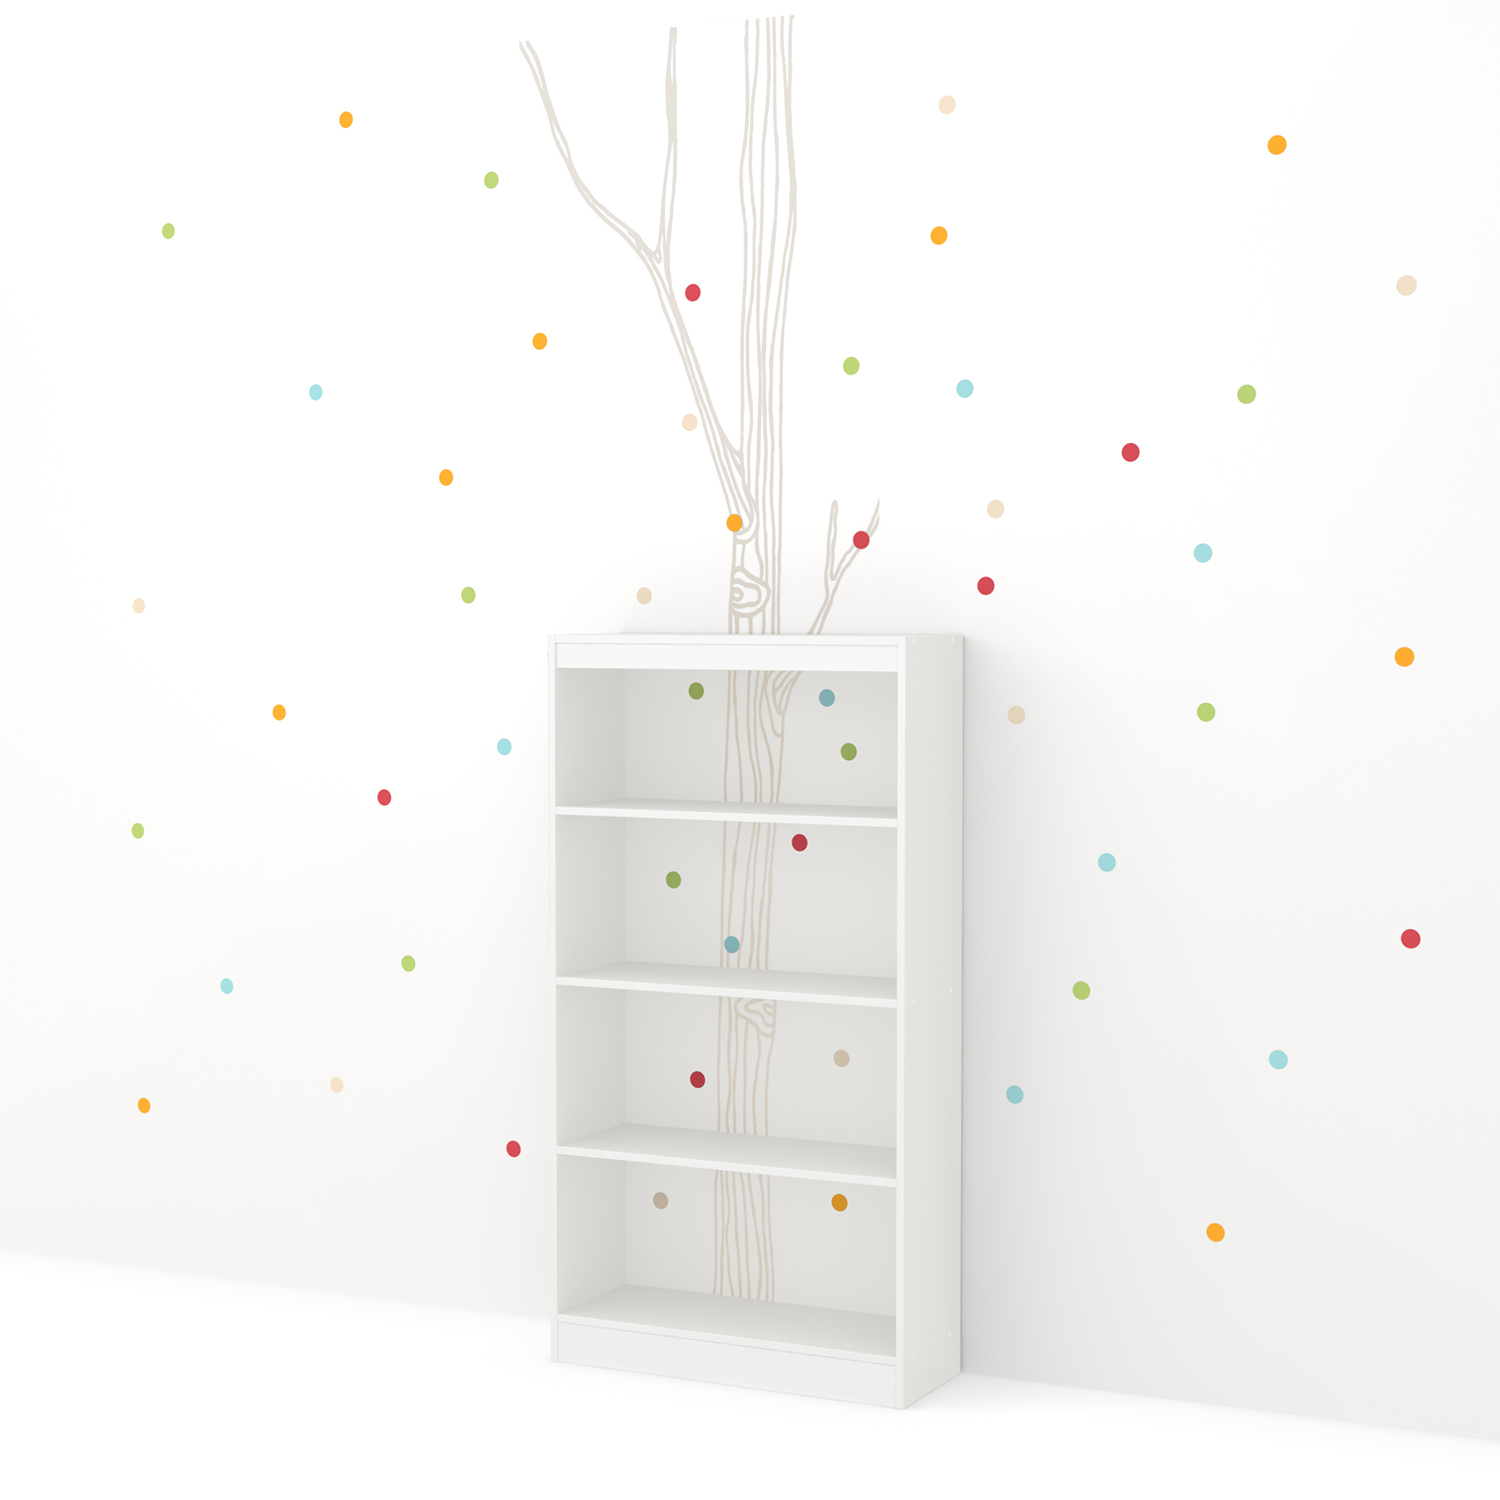 Axess 4 Shelves Bookcase - Birch Tree and Colored Dots Decals, Pure White - SS-8050127K